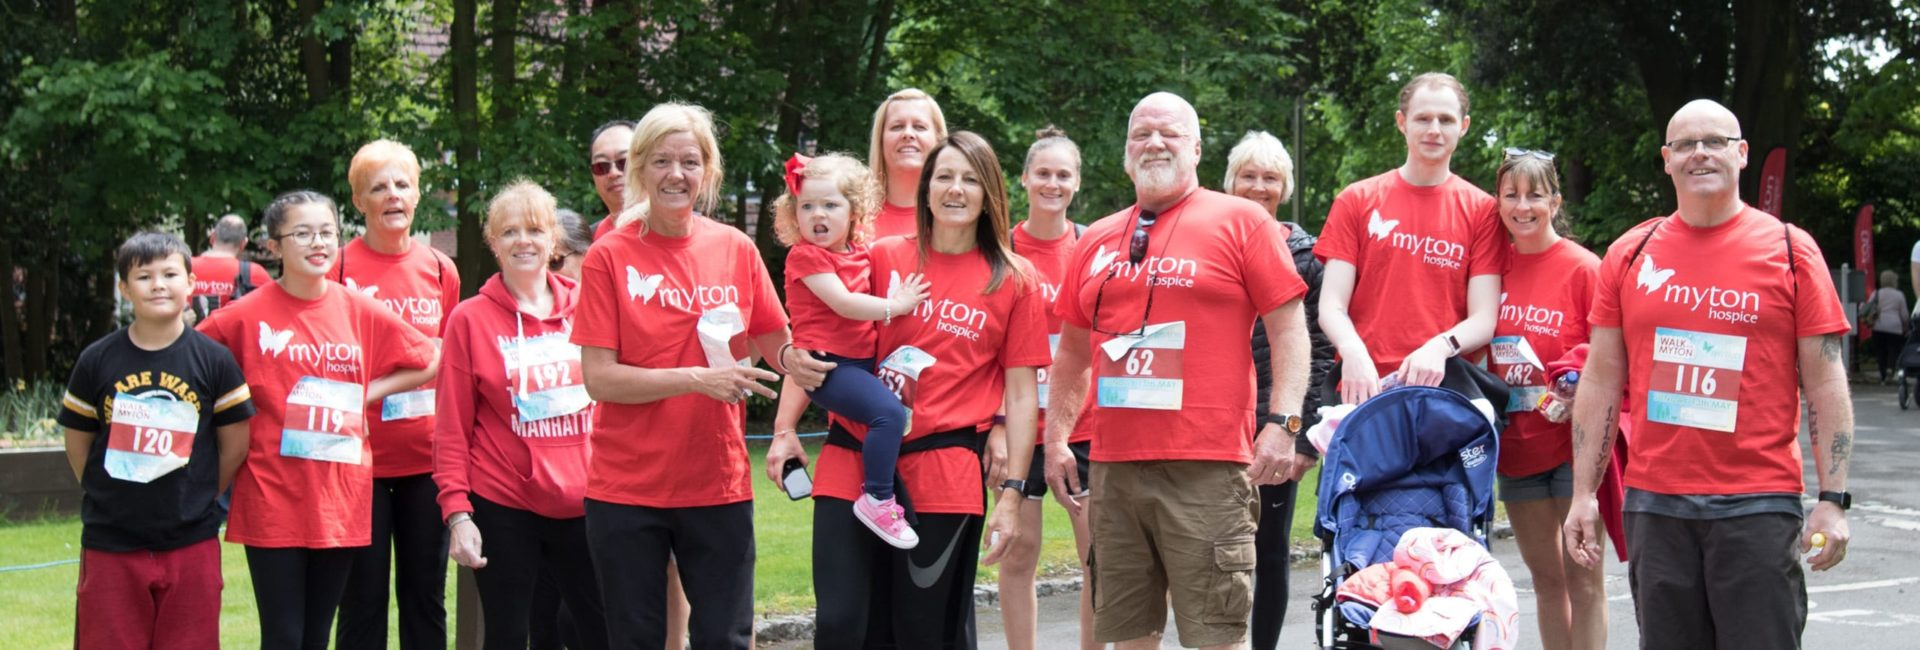 The Myton Hospices - Walk for Myton 2019 - Flex Slider